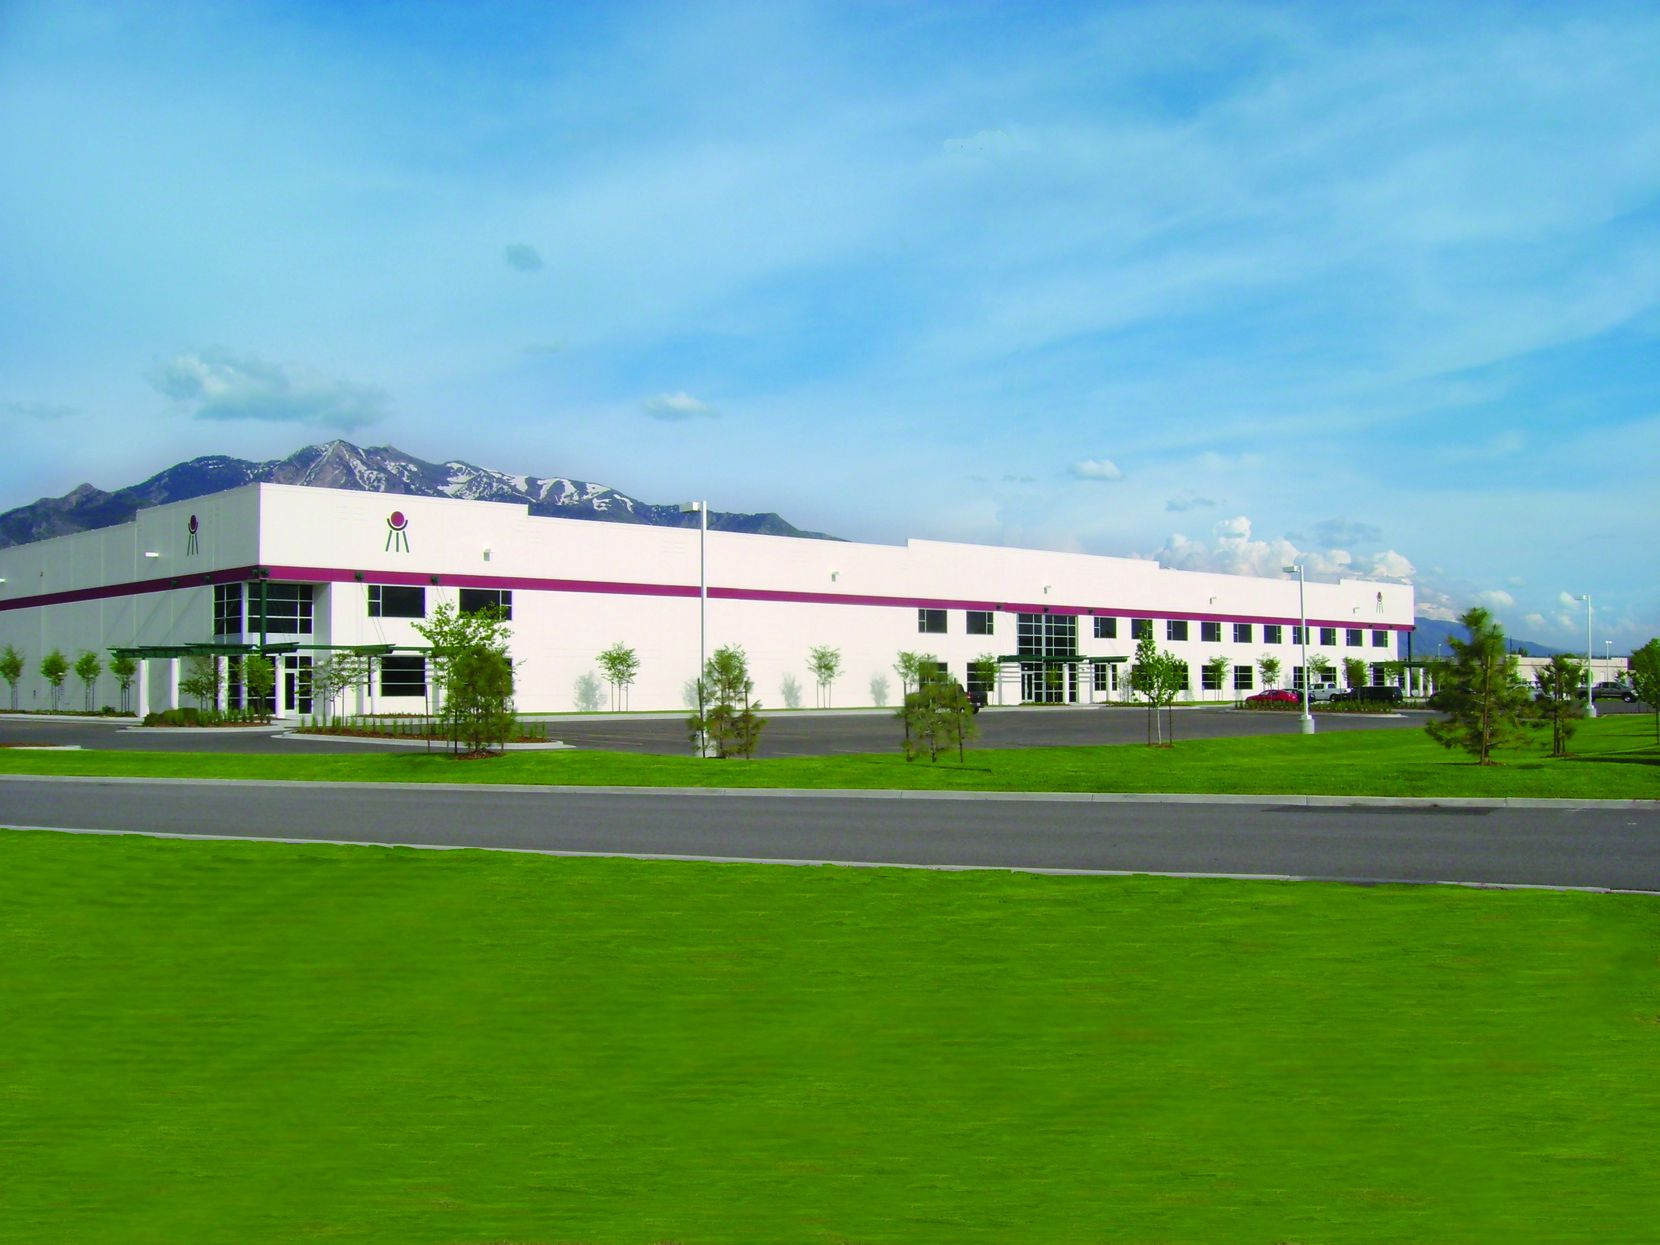 Capstone Nutrition's manufacturing facility in Utah is one of the largest in the industry, according to Cornell Capital.